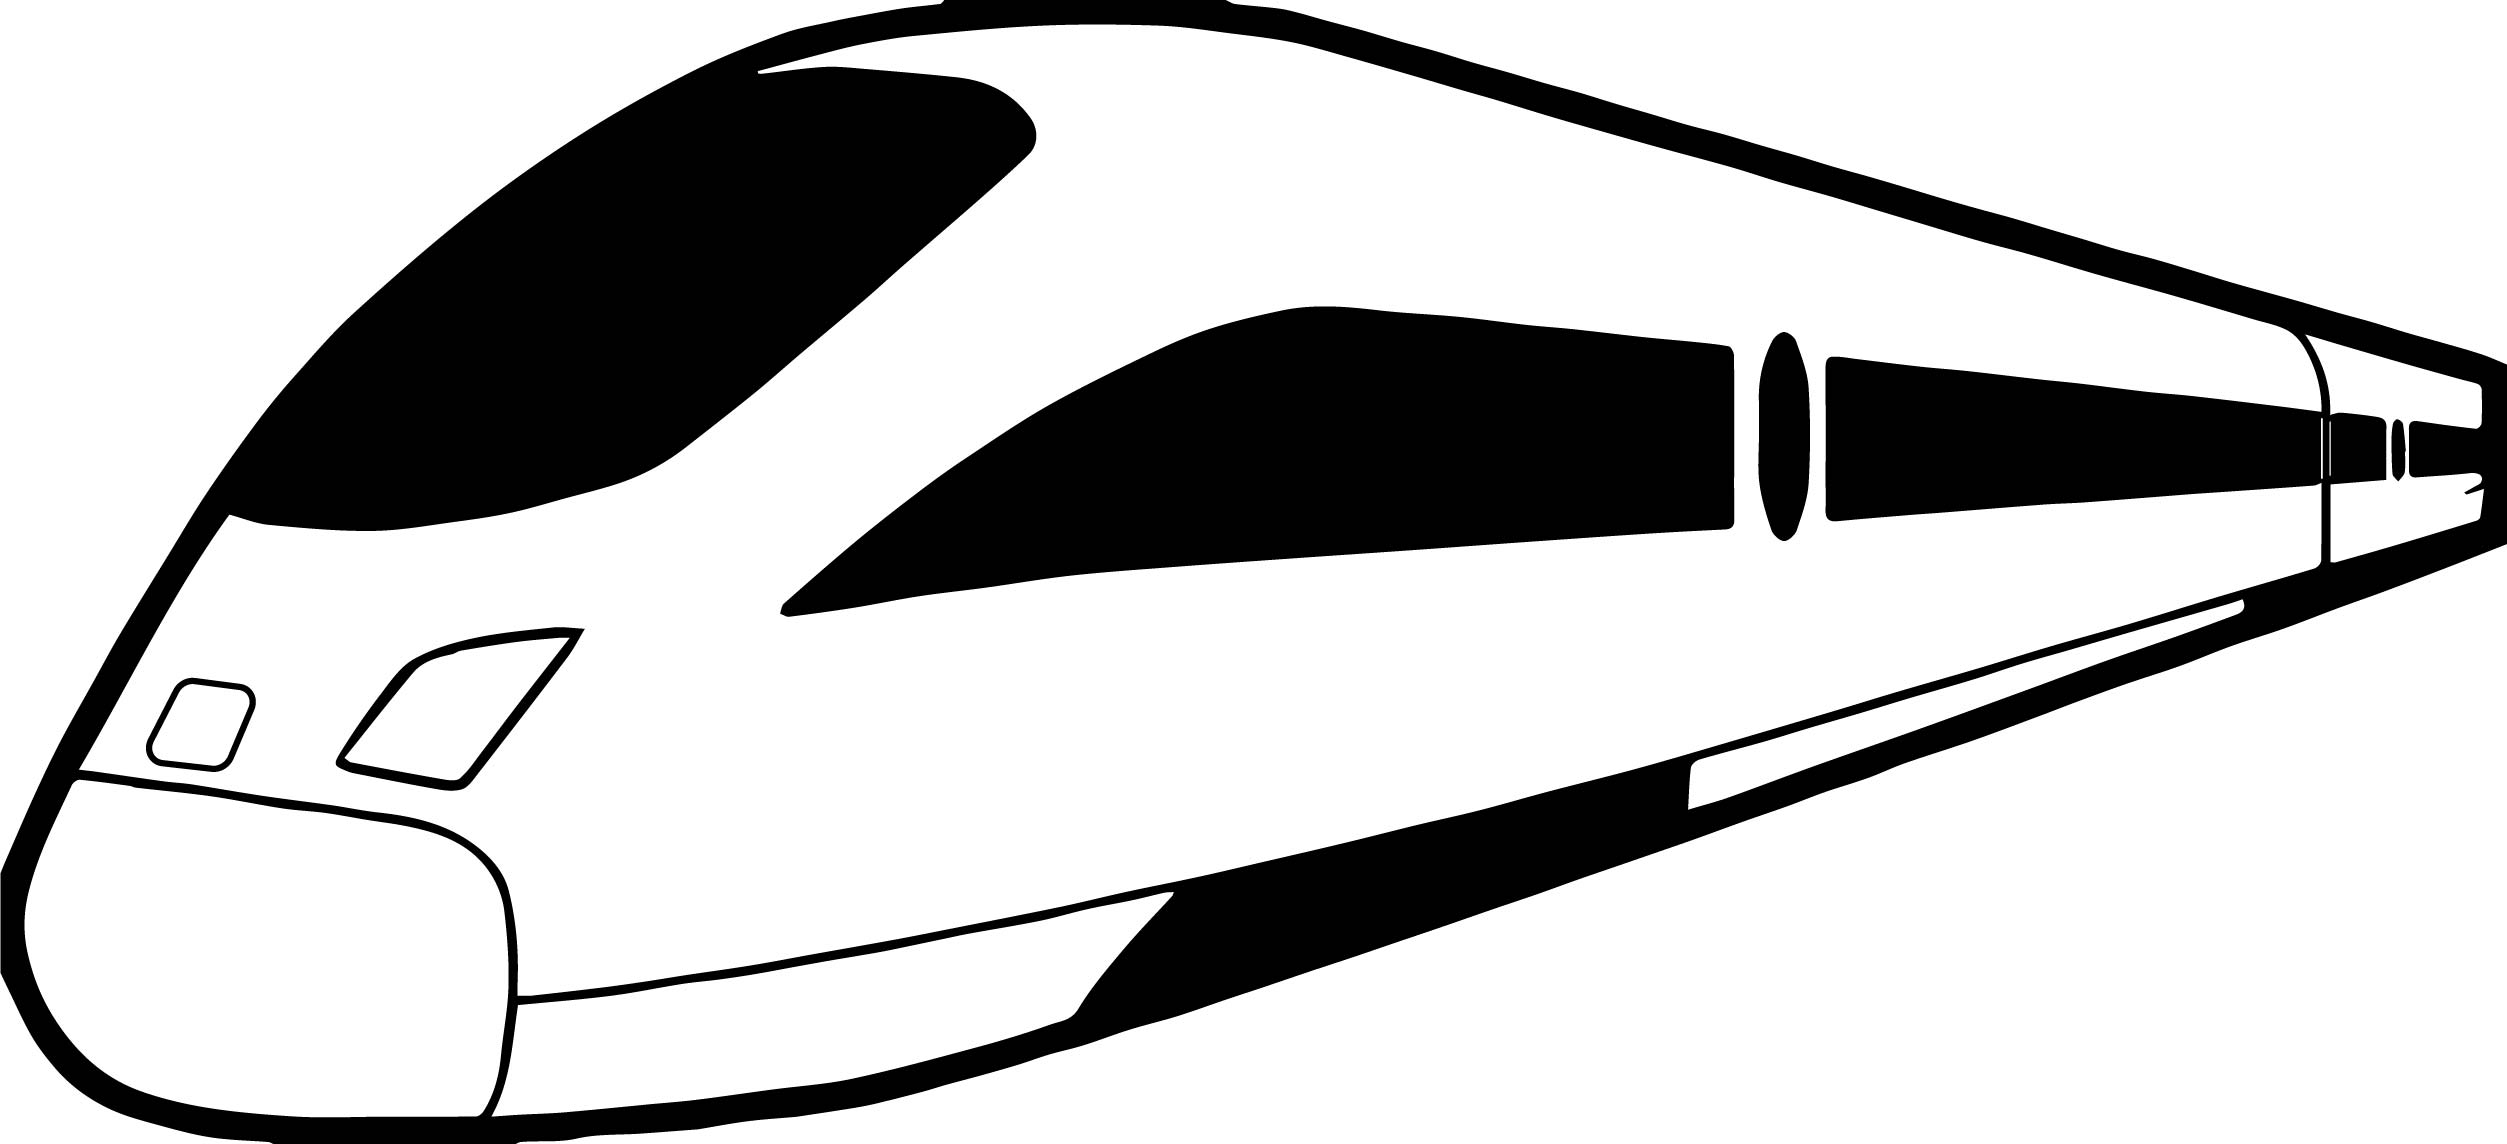 train printables. train coloring page of an engine. free online ...